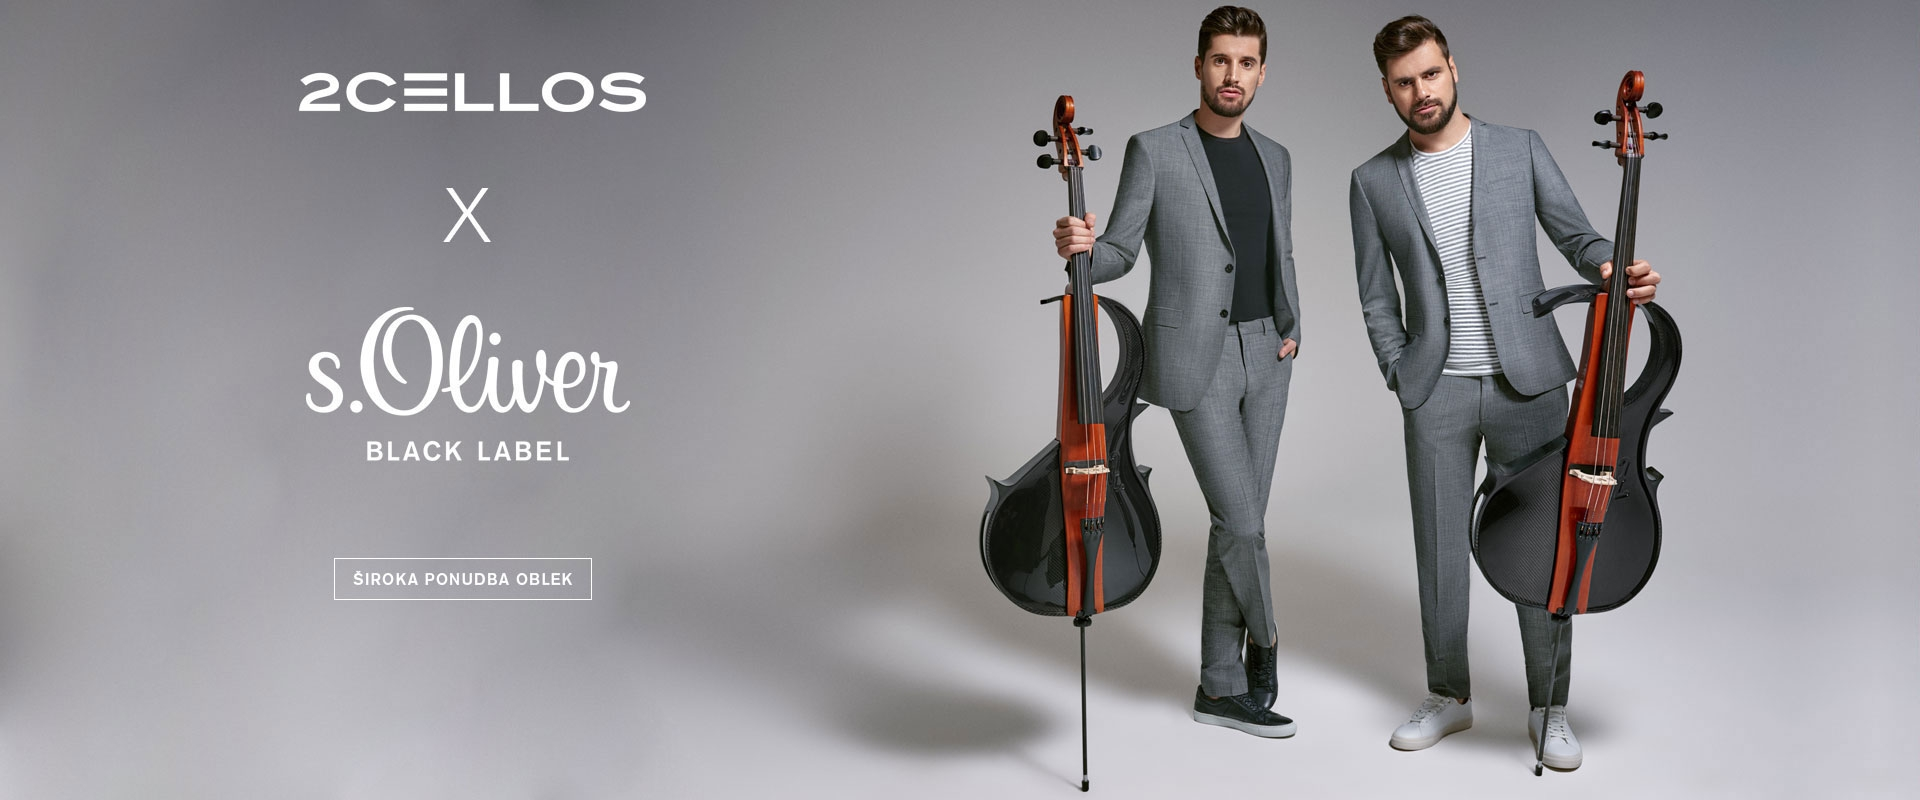 2CELLOS | s.Oliver Shop